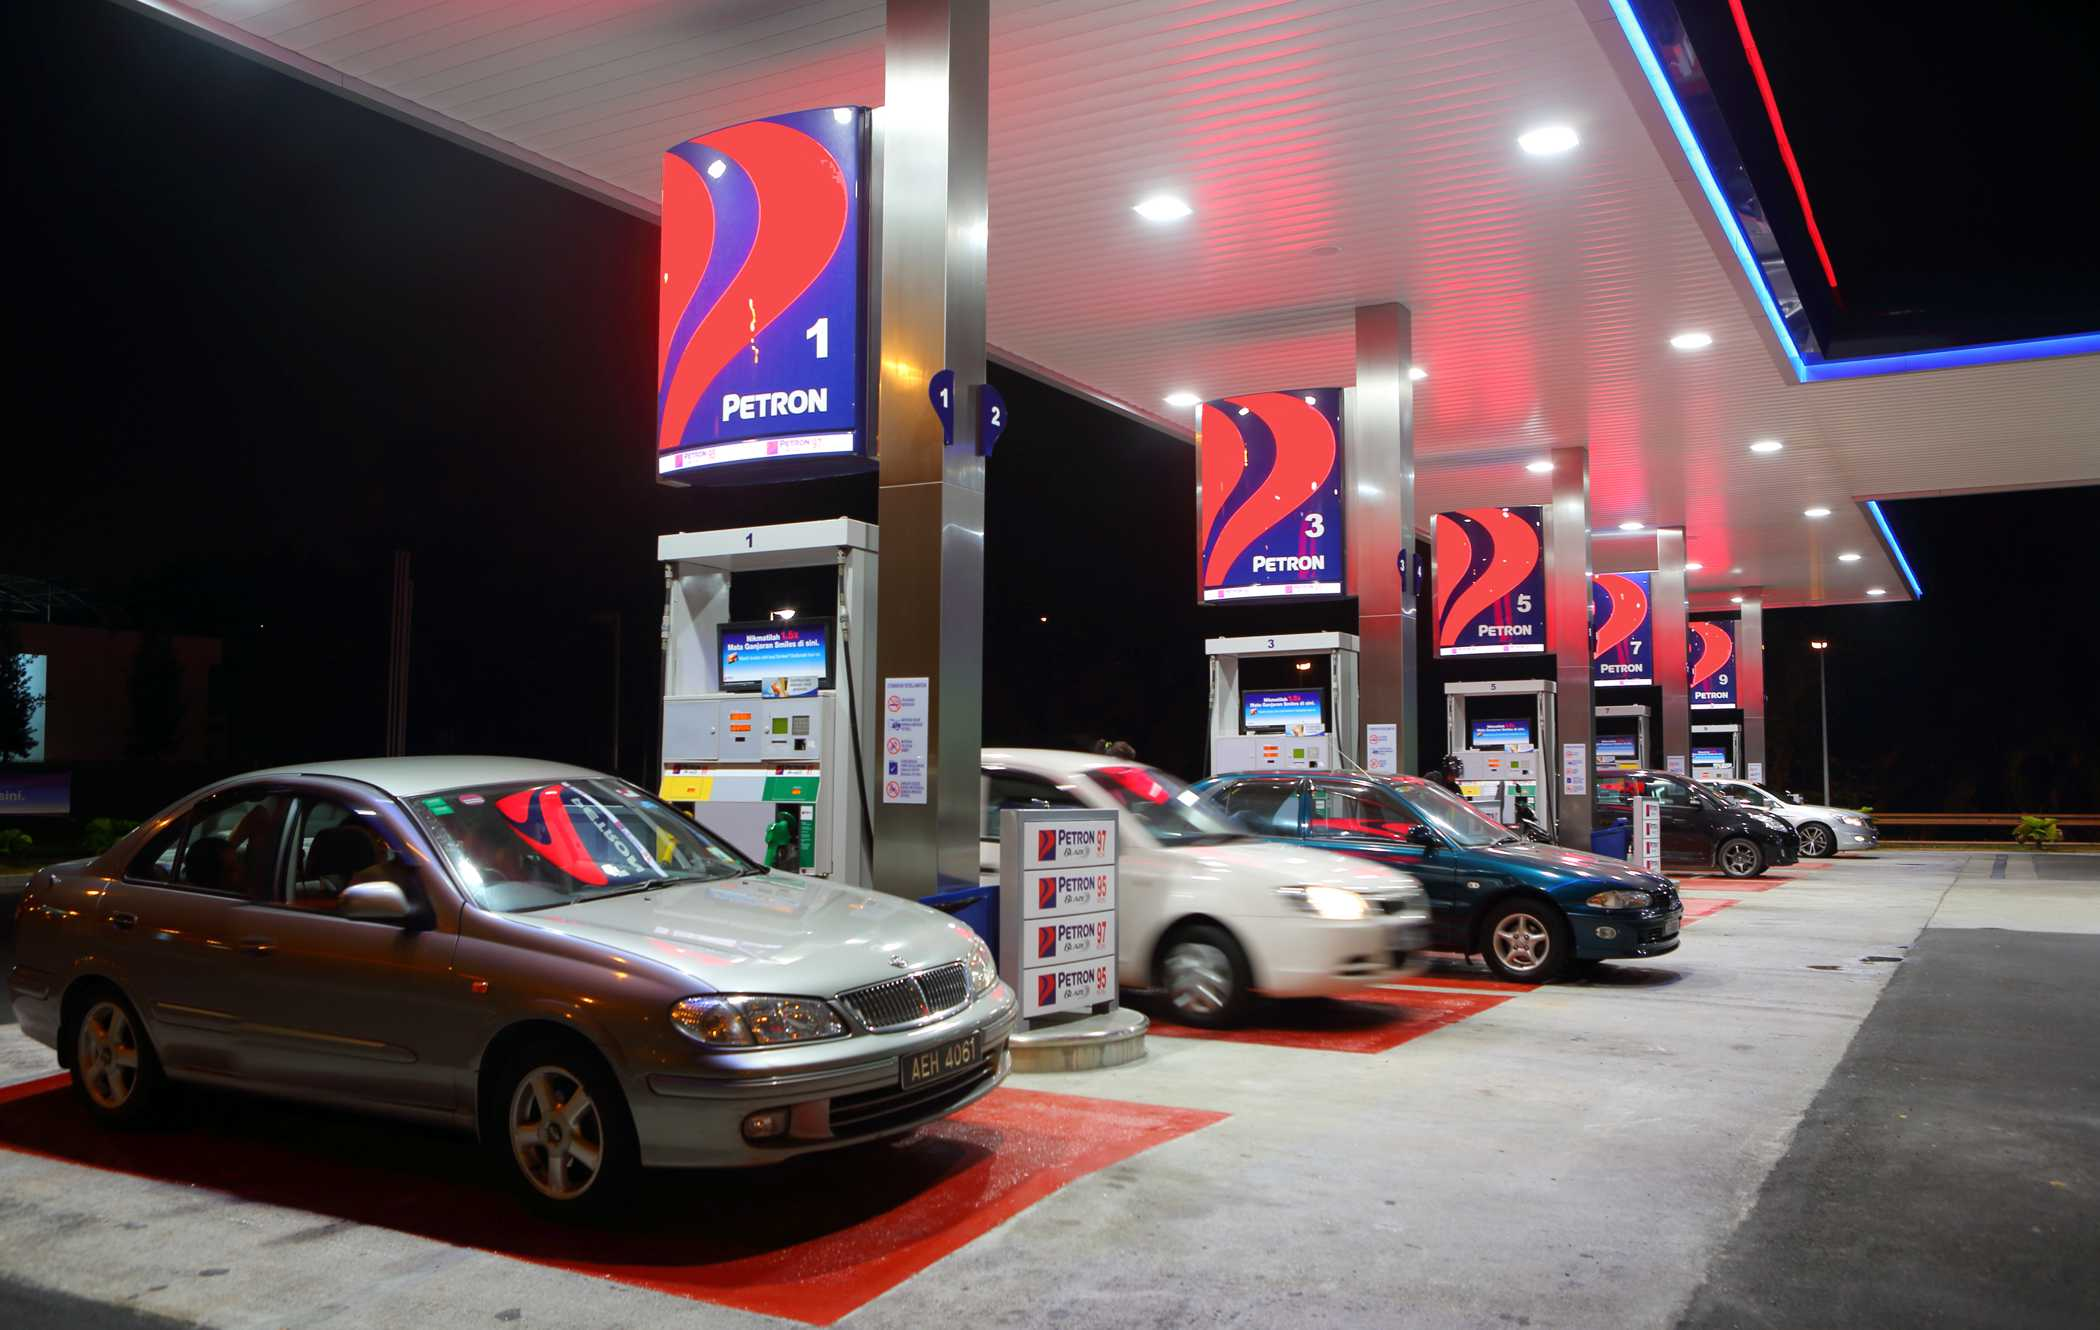 Image from Petron